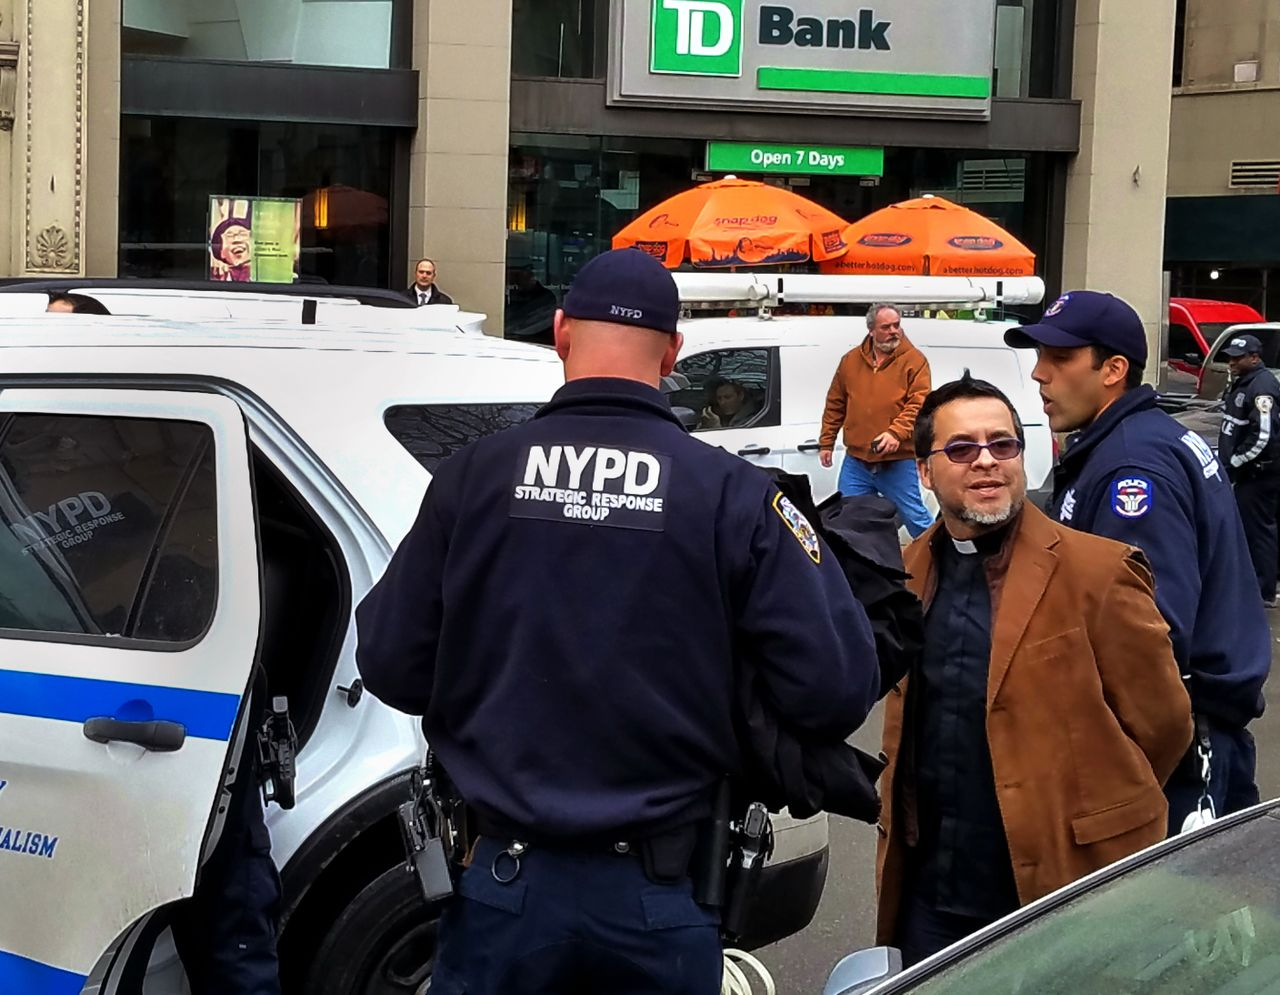 NYC to probe NYPD conduct in rally against activist's deportation